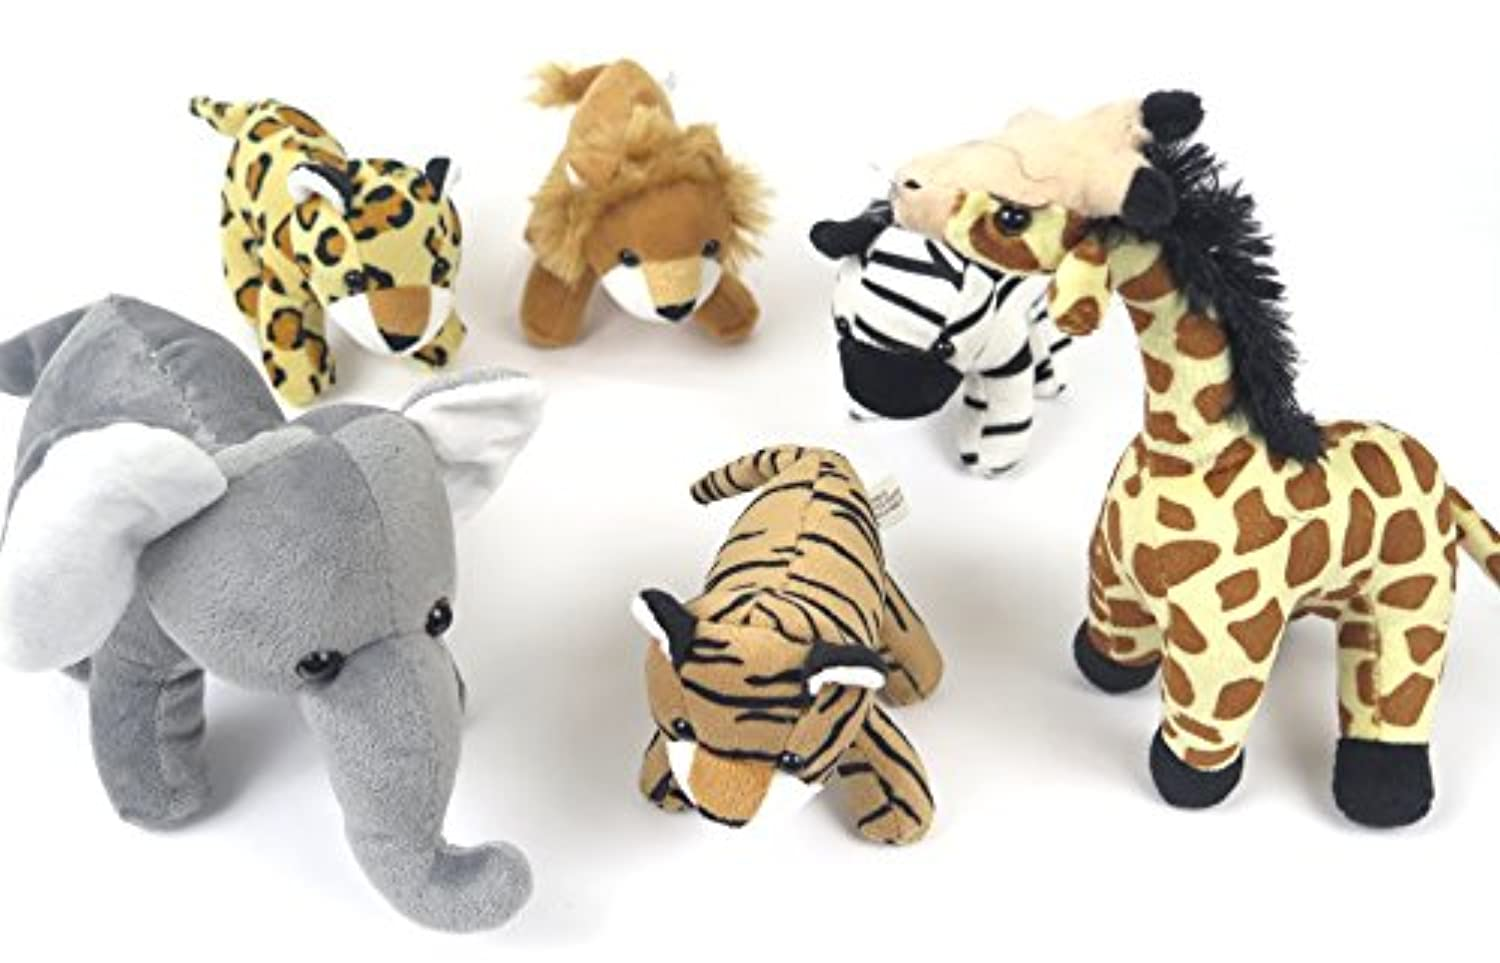 Children's plush toddler preschool and baby Toys. kids set Includes 6 Wildlife Animals .